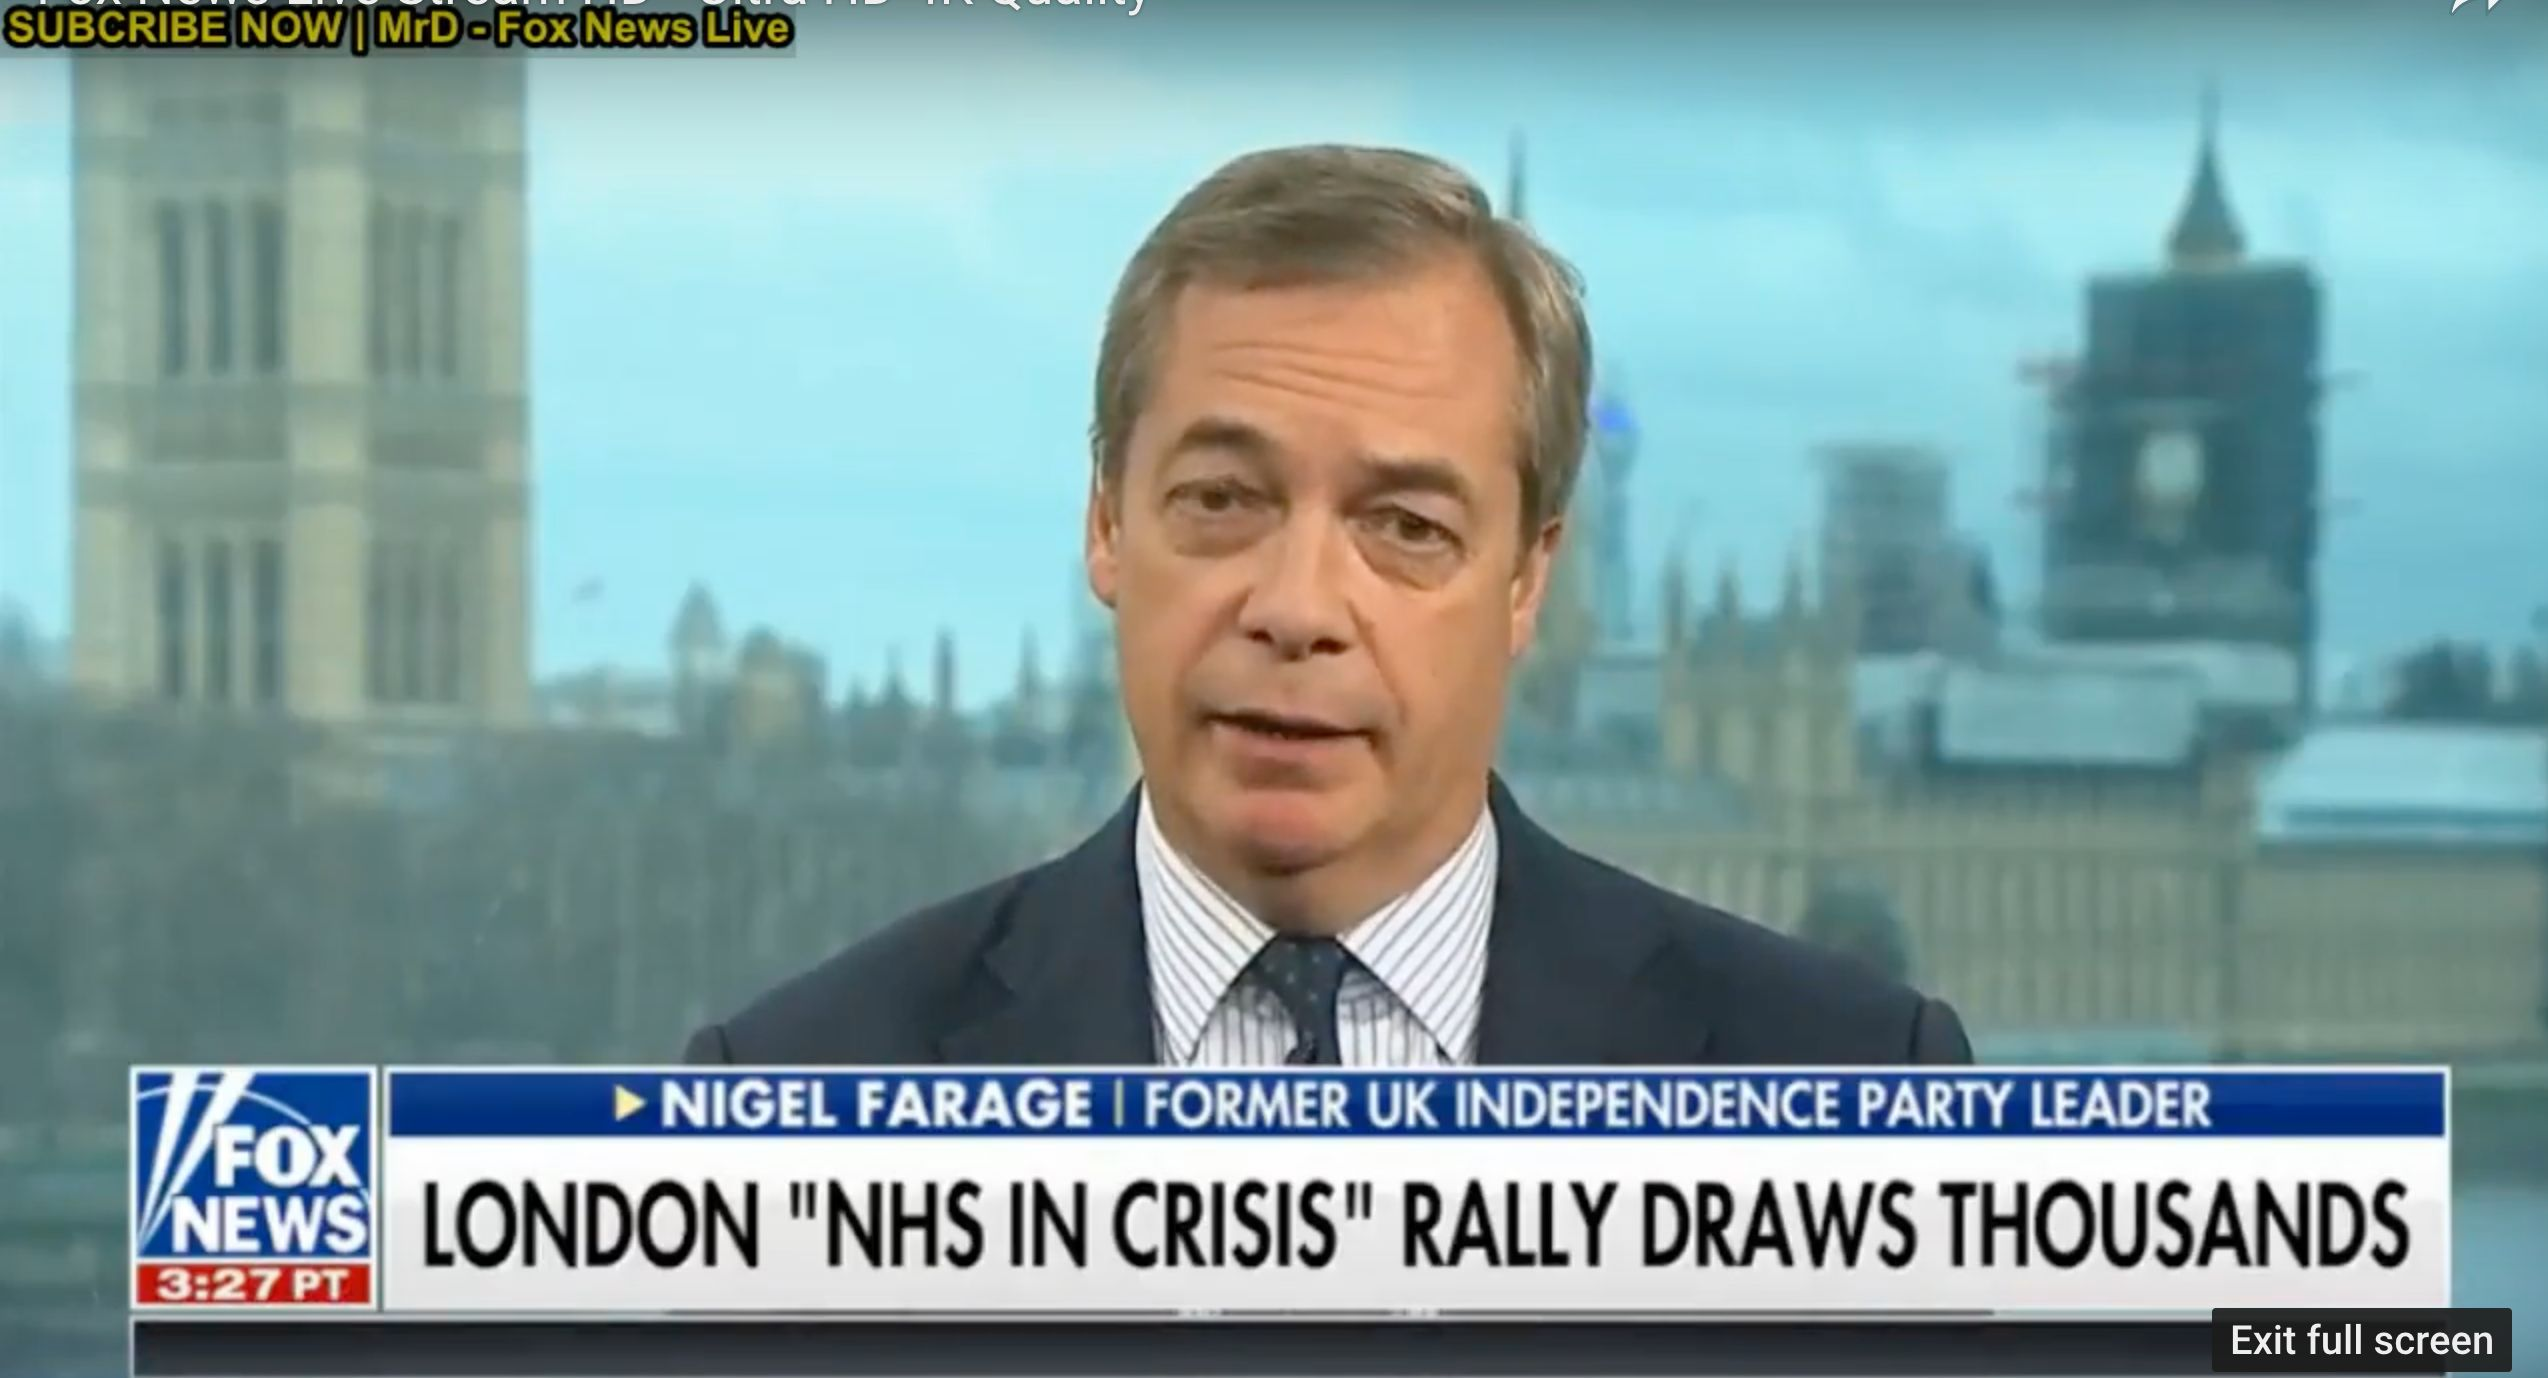 Donald Trump Attacks The NHS Minutes After Nigel Farage Appears On Fox